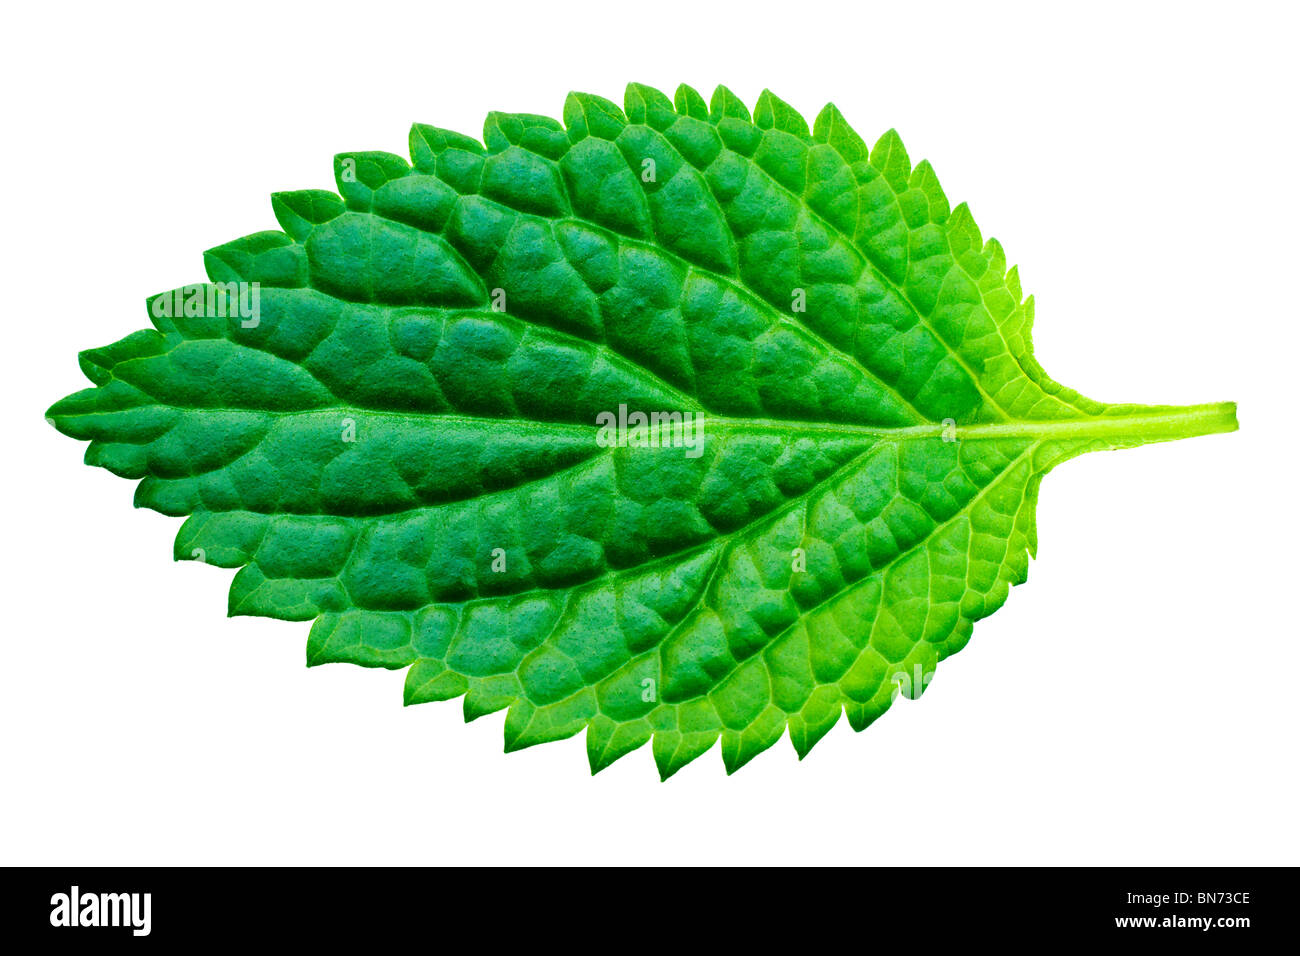 Une belle feuille verte et luxuriante. Isolated over white with clipping path. Photo Stock